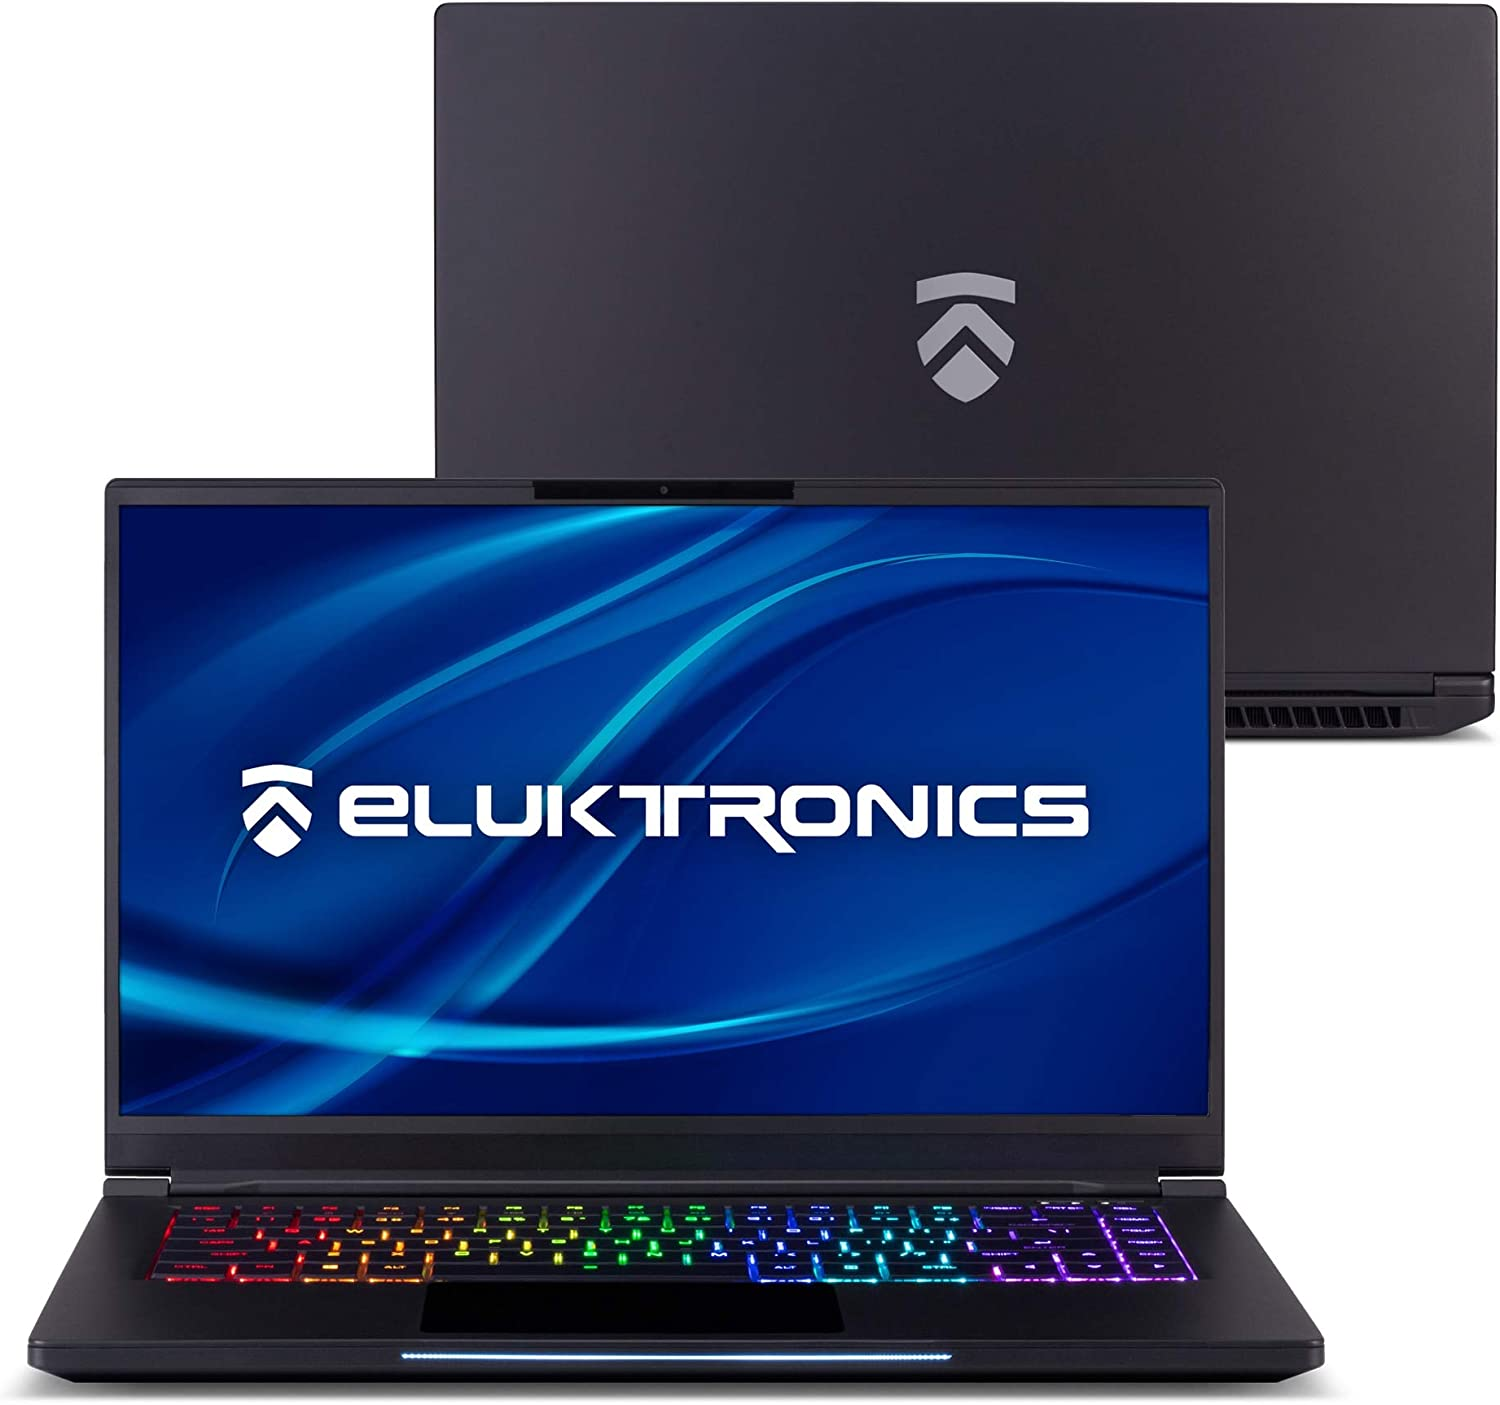 "Eluktronics MAG-15 Slim & Ultra Light NVIDIA GeForce RTX 2070 Gaming Laptop with Mechanical RGB Keyboard - Intel i7-9750H CPU 8GB GDDR6 VR Ready GPU 15.6"" 144Hz Full HD IPS 2TB NVMe SSD + 64GB RAM"